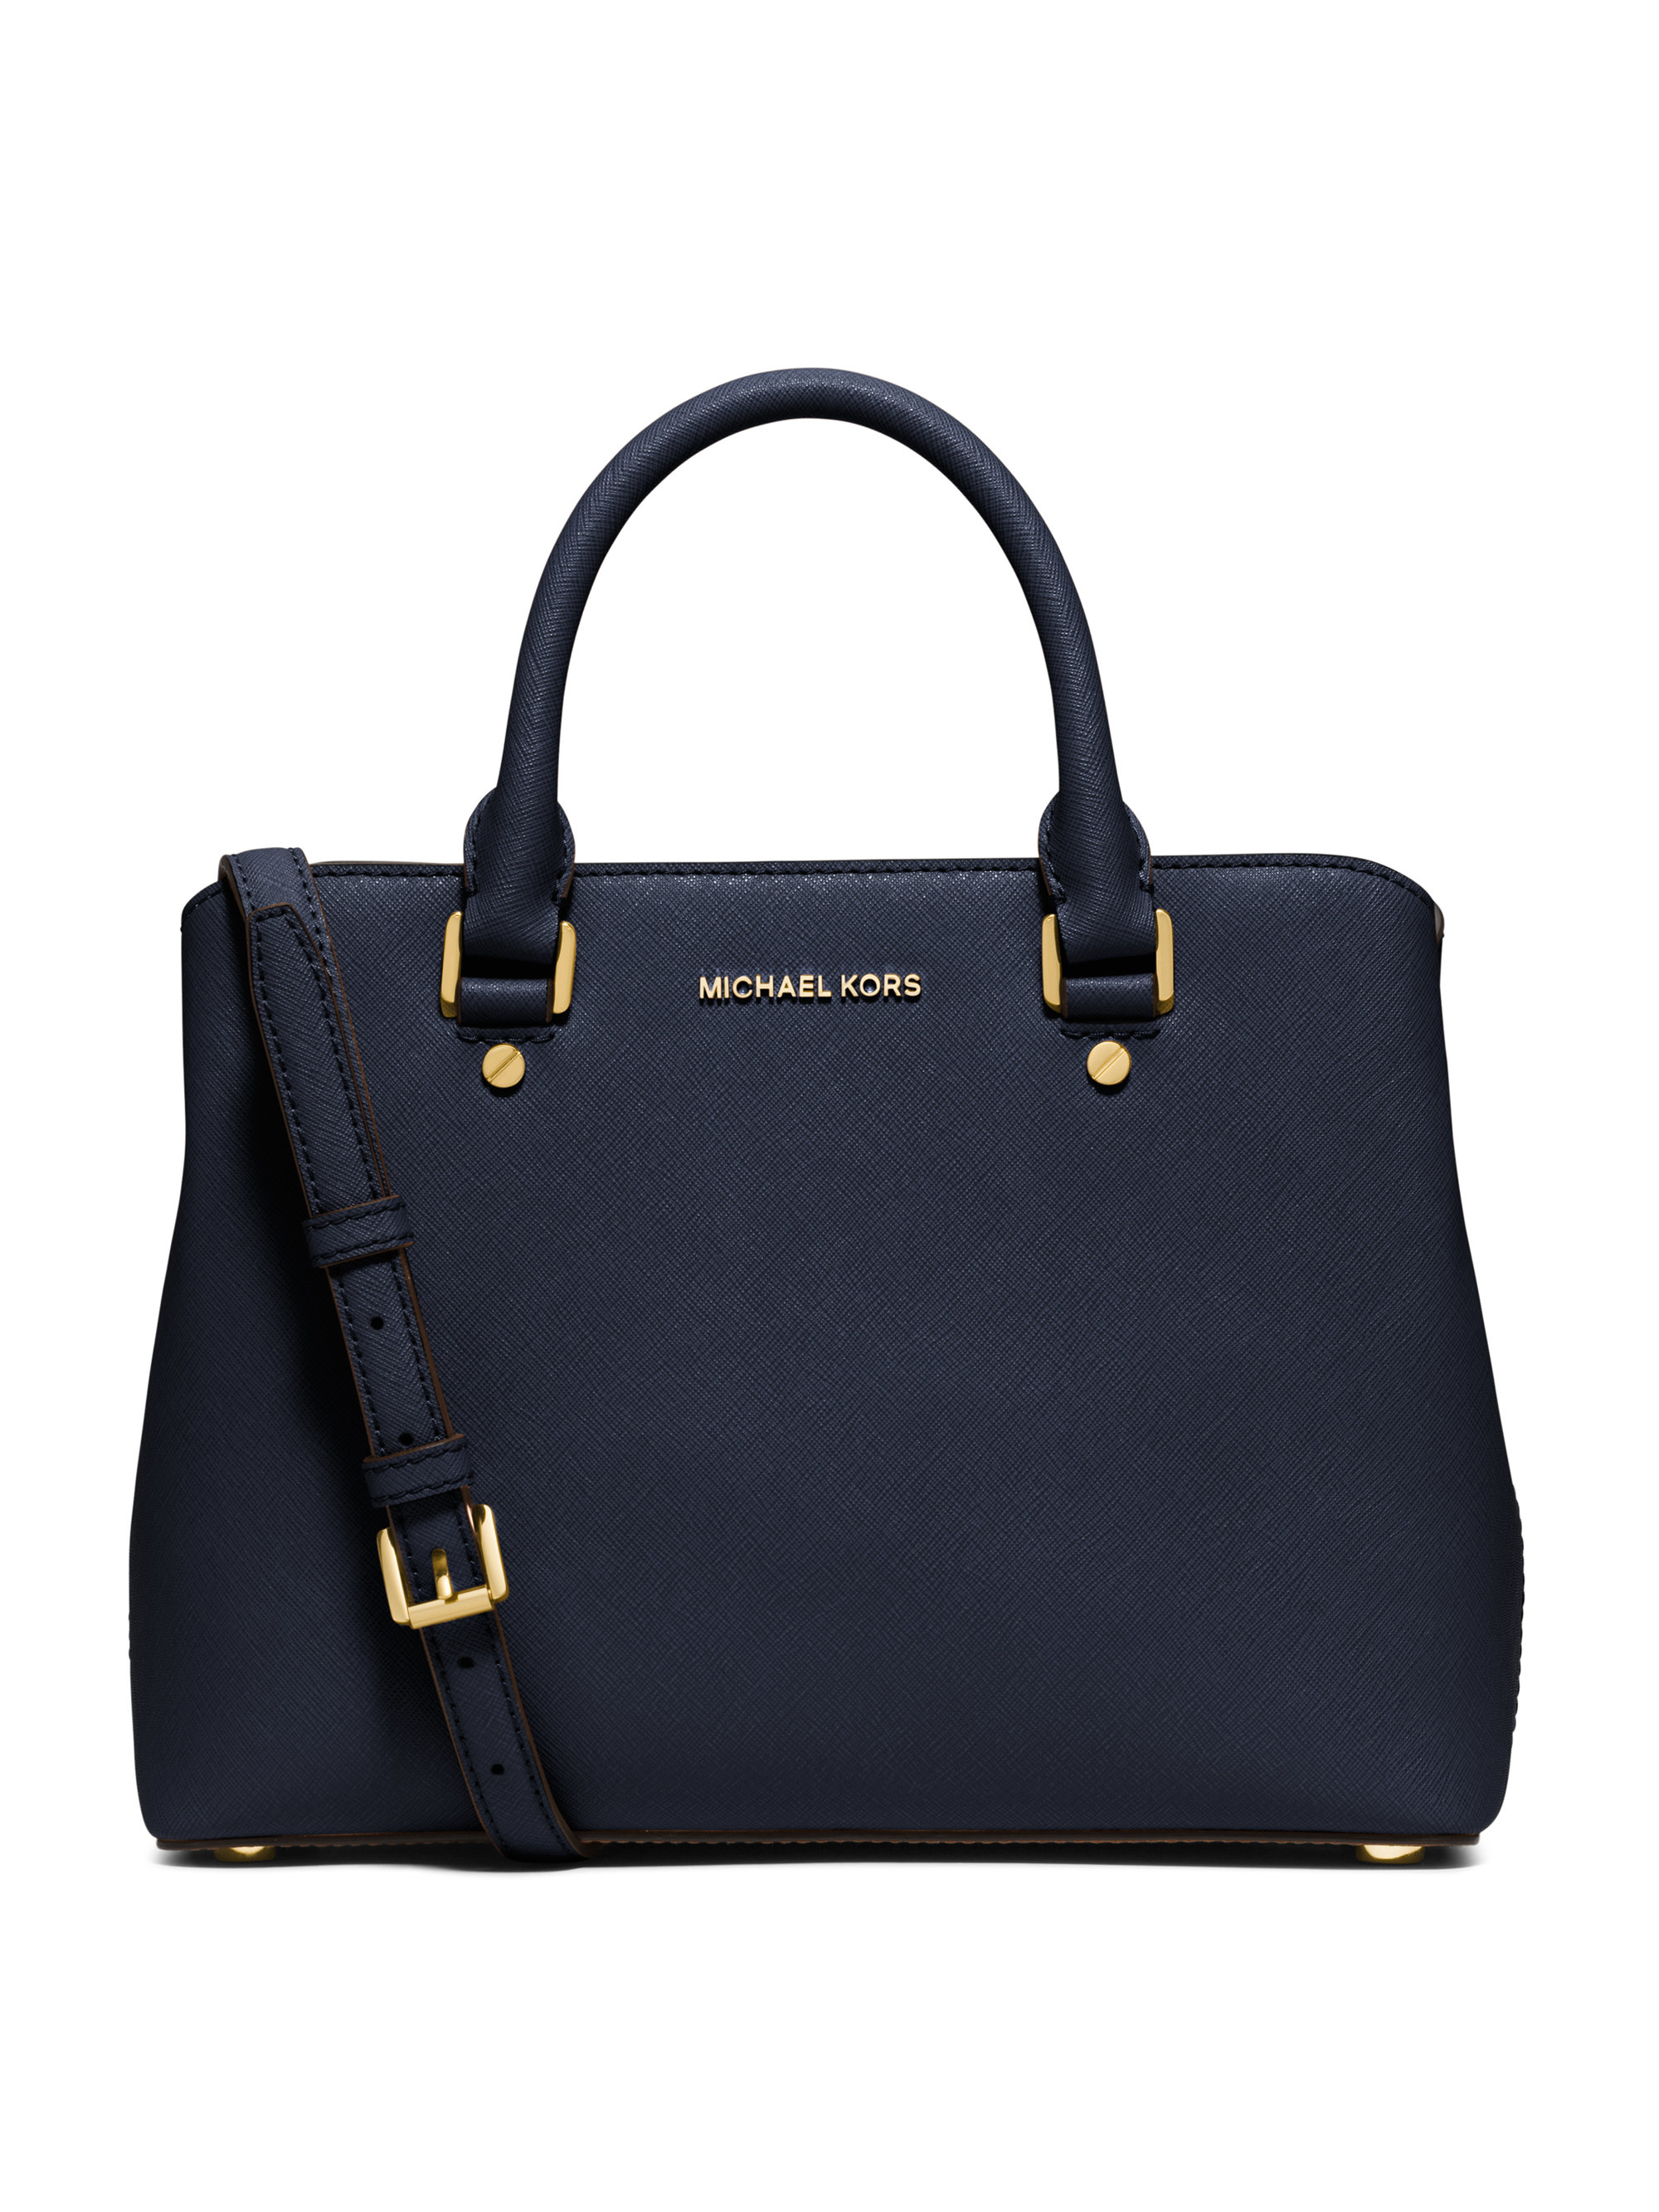 michael michael kors savannah medium saffiano leather satchel in blue lyst. Black Bedroom Furniture Sets. Home Design Ideas